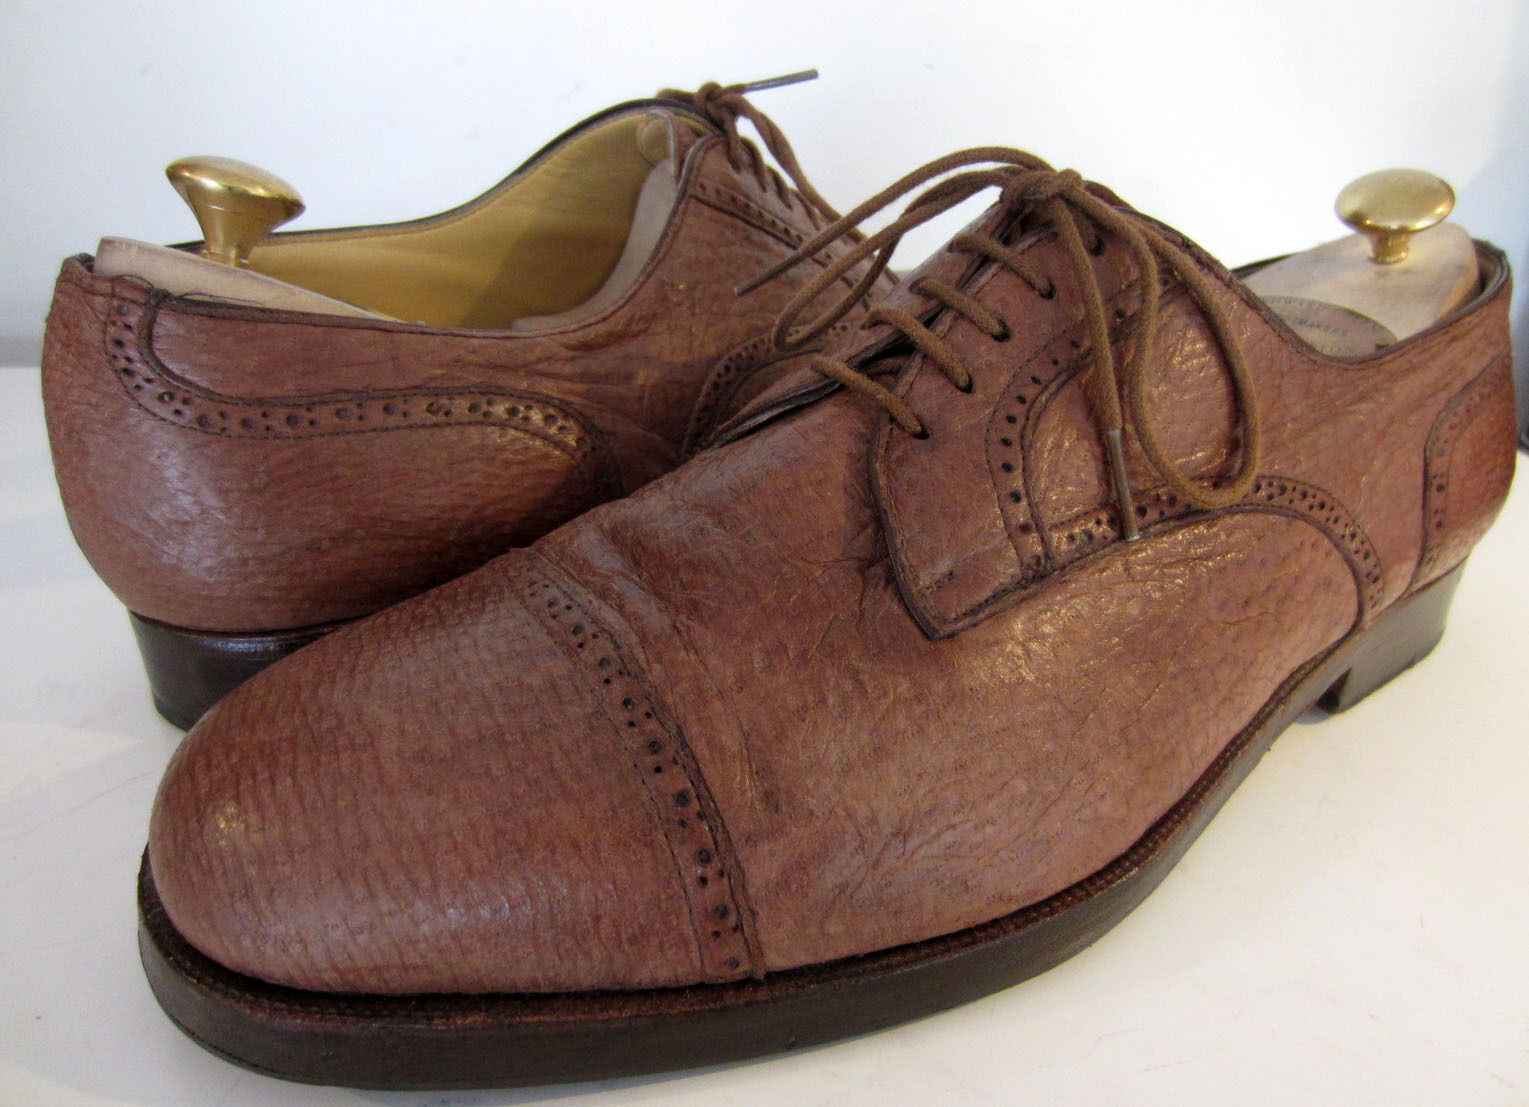 Stemar Lace Honey Brown Oxford Cap Lace Stemar up Shoes UK 10 EU 44.5 Moreschi c4fcca